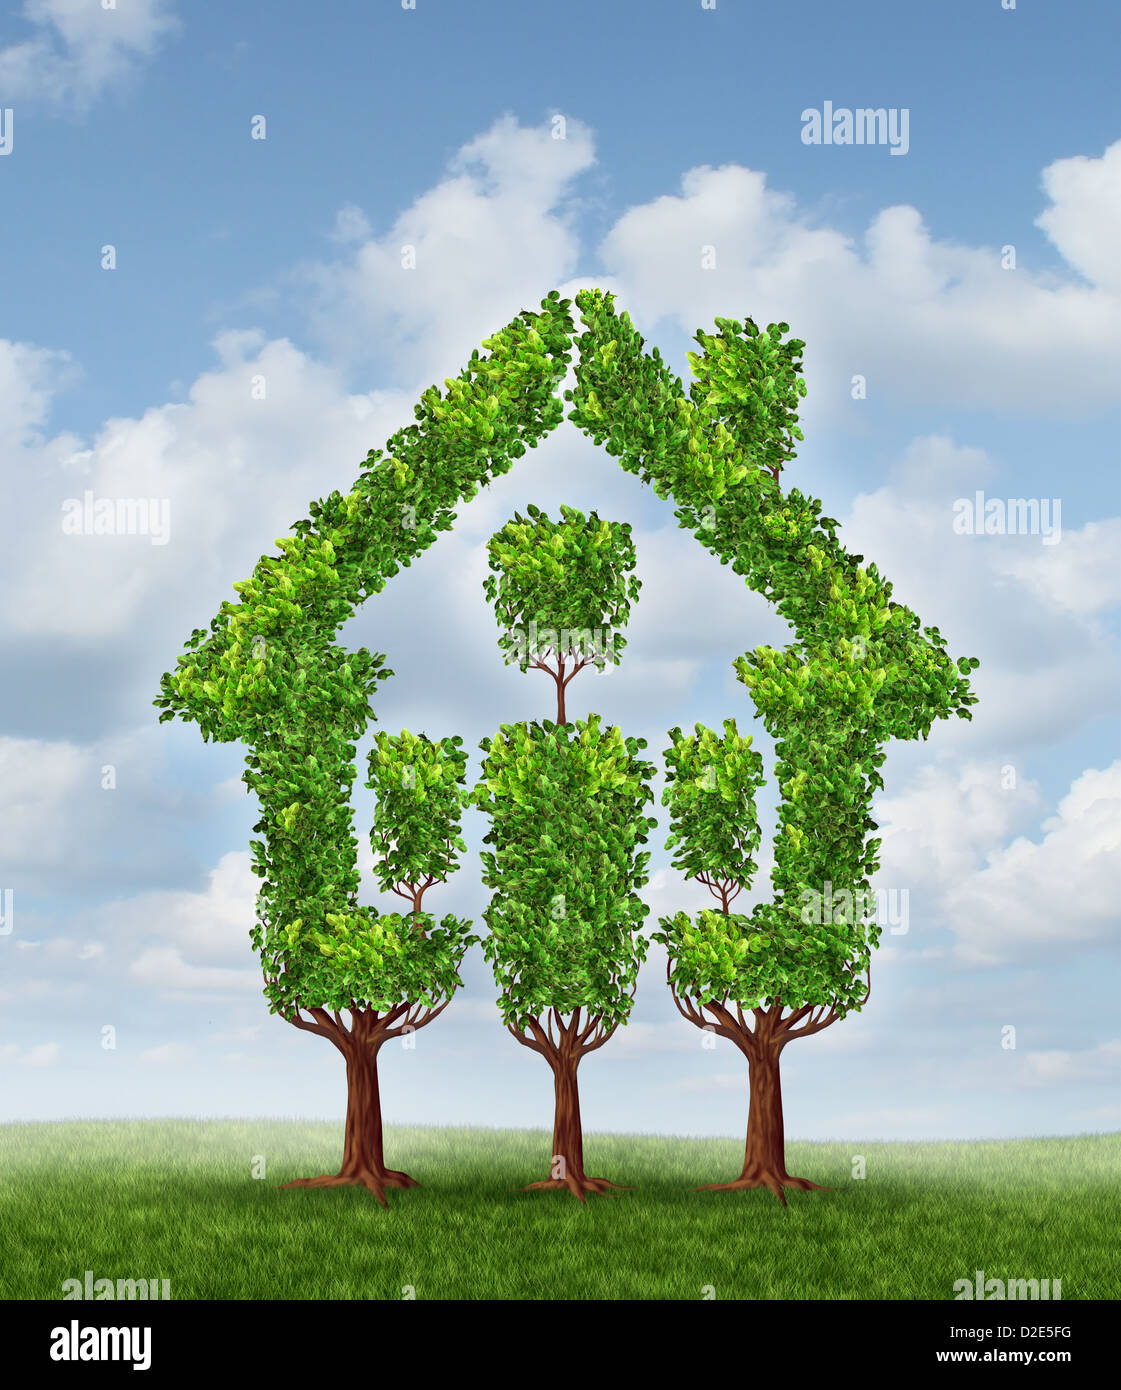 House Tree As A Symbol Of Real Estate Planning And Family Home Stock